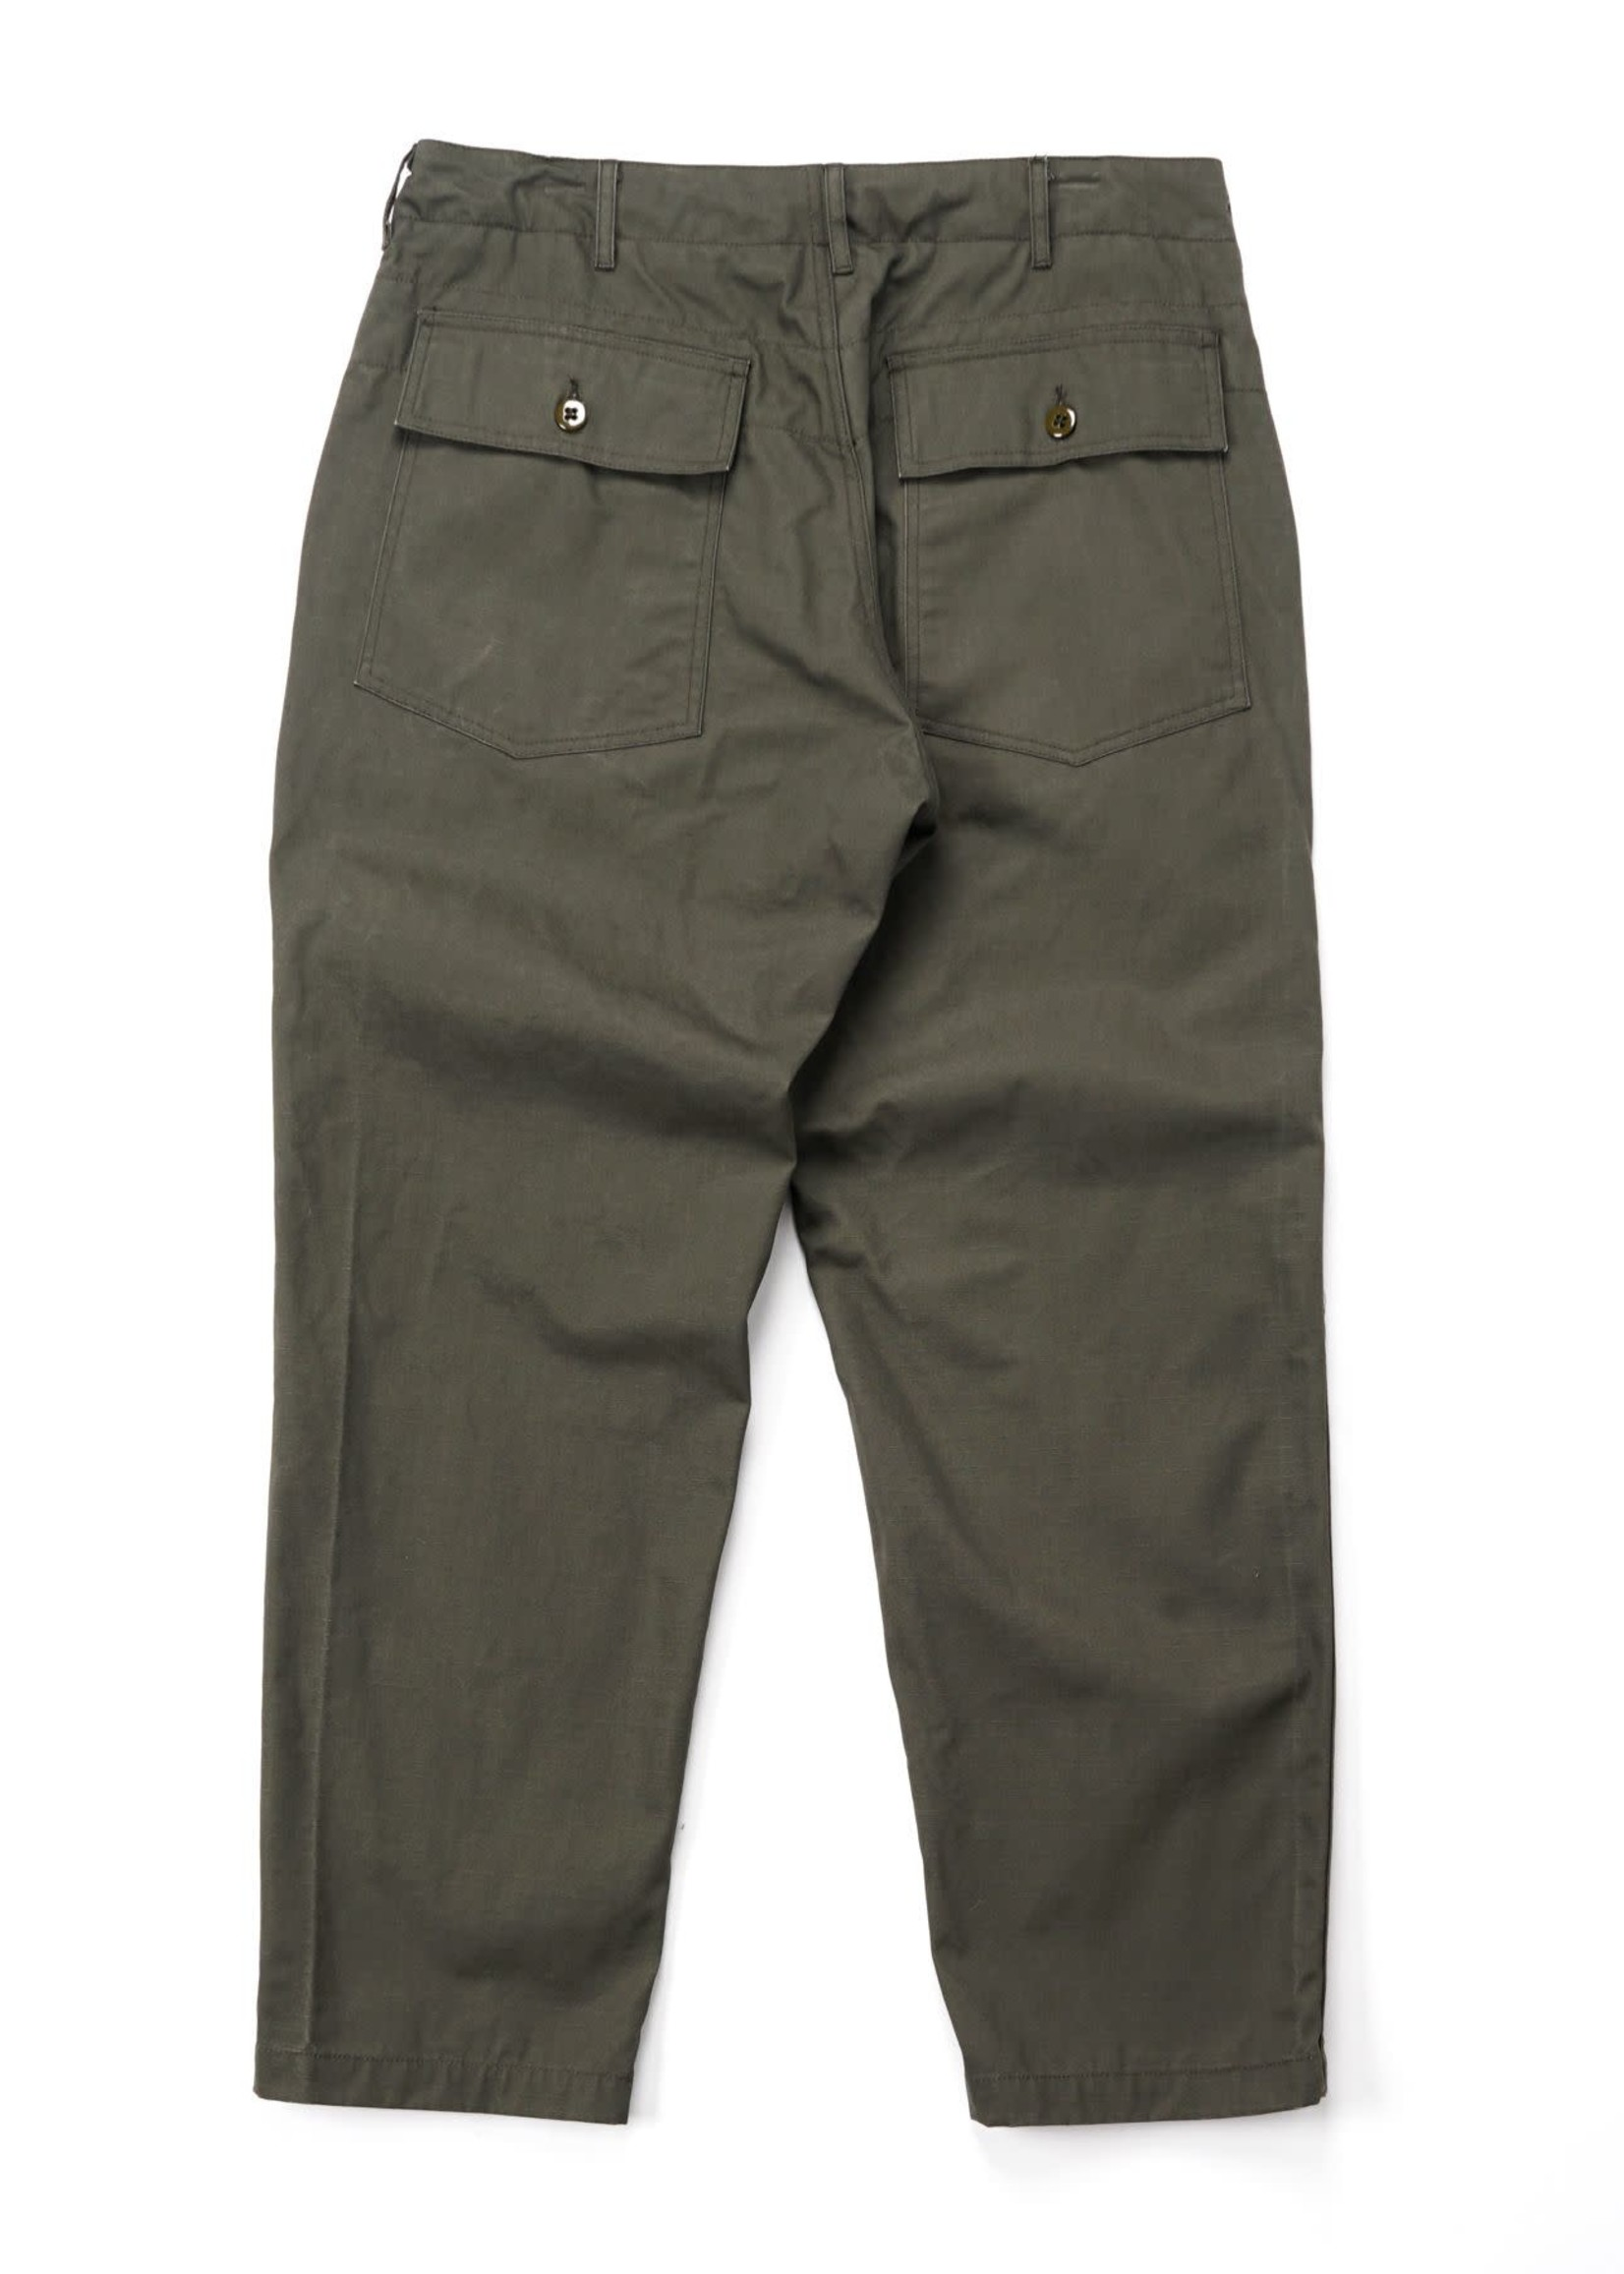 Engineered Garments Engineered Garments Fatigue Pant Olive Heavy Cotton Ripstop